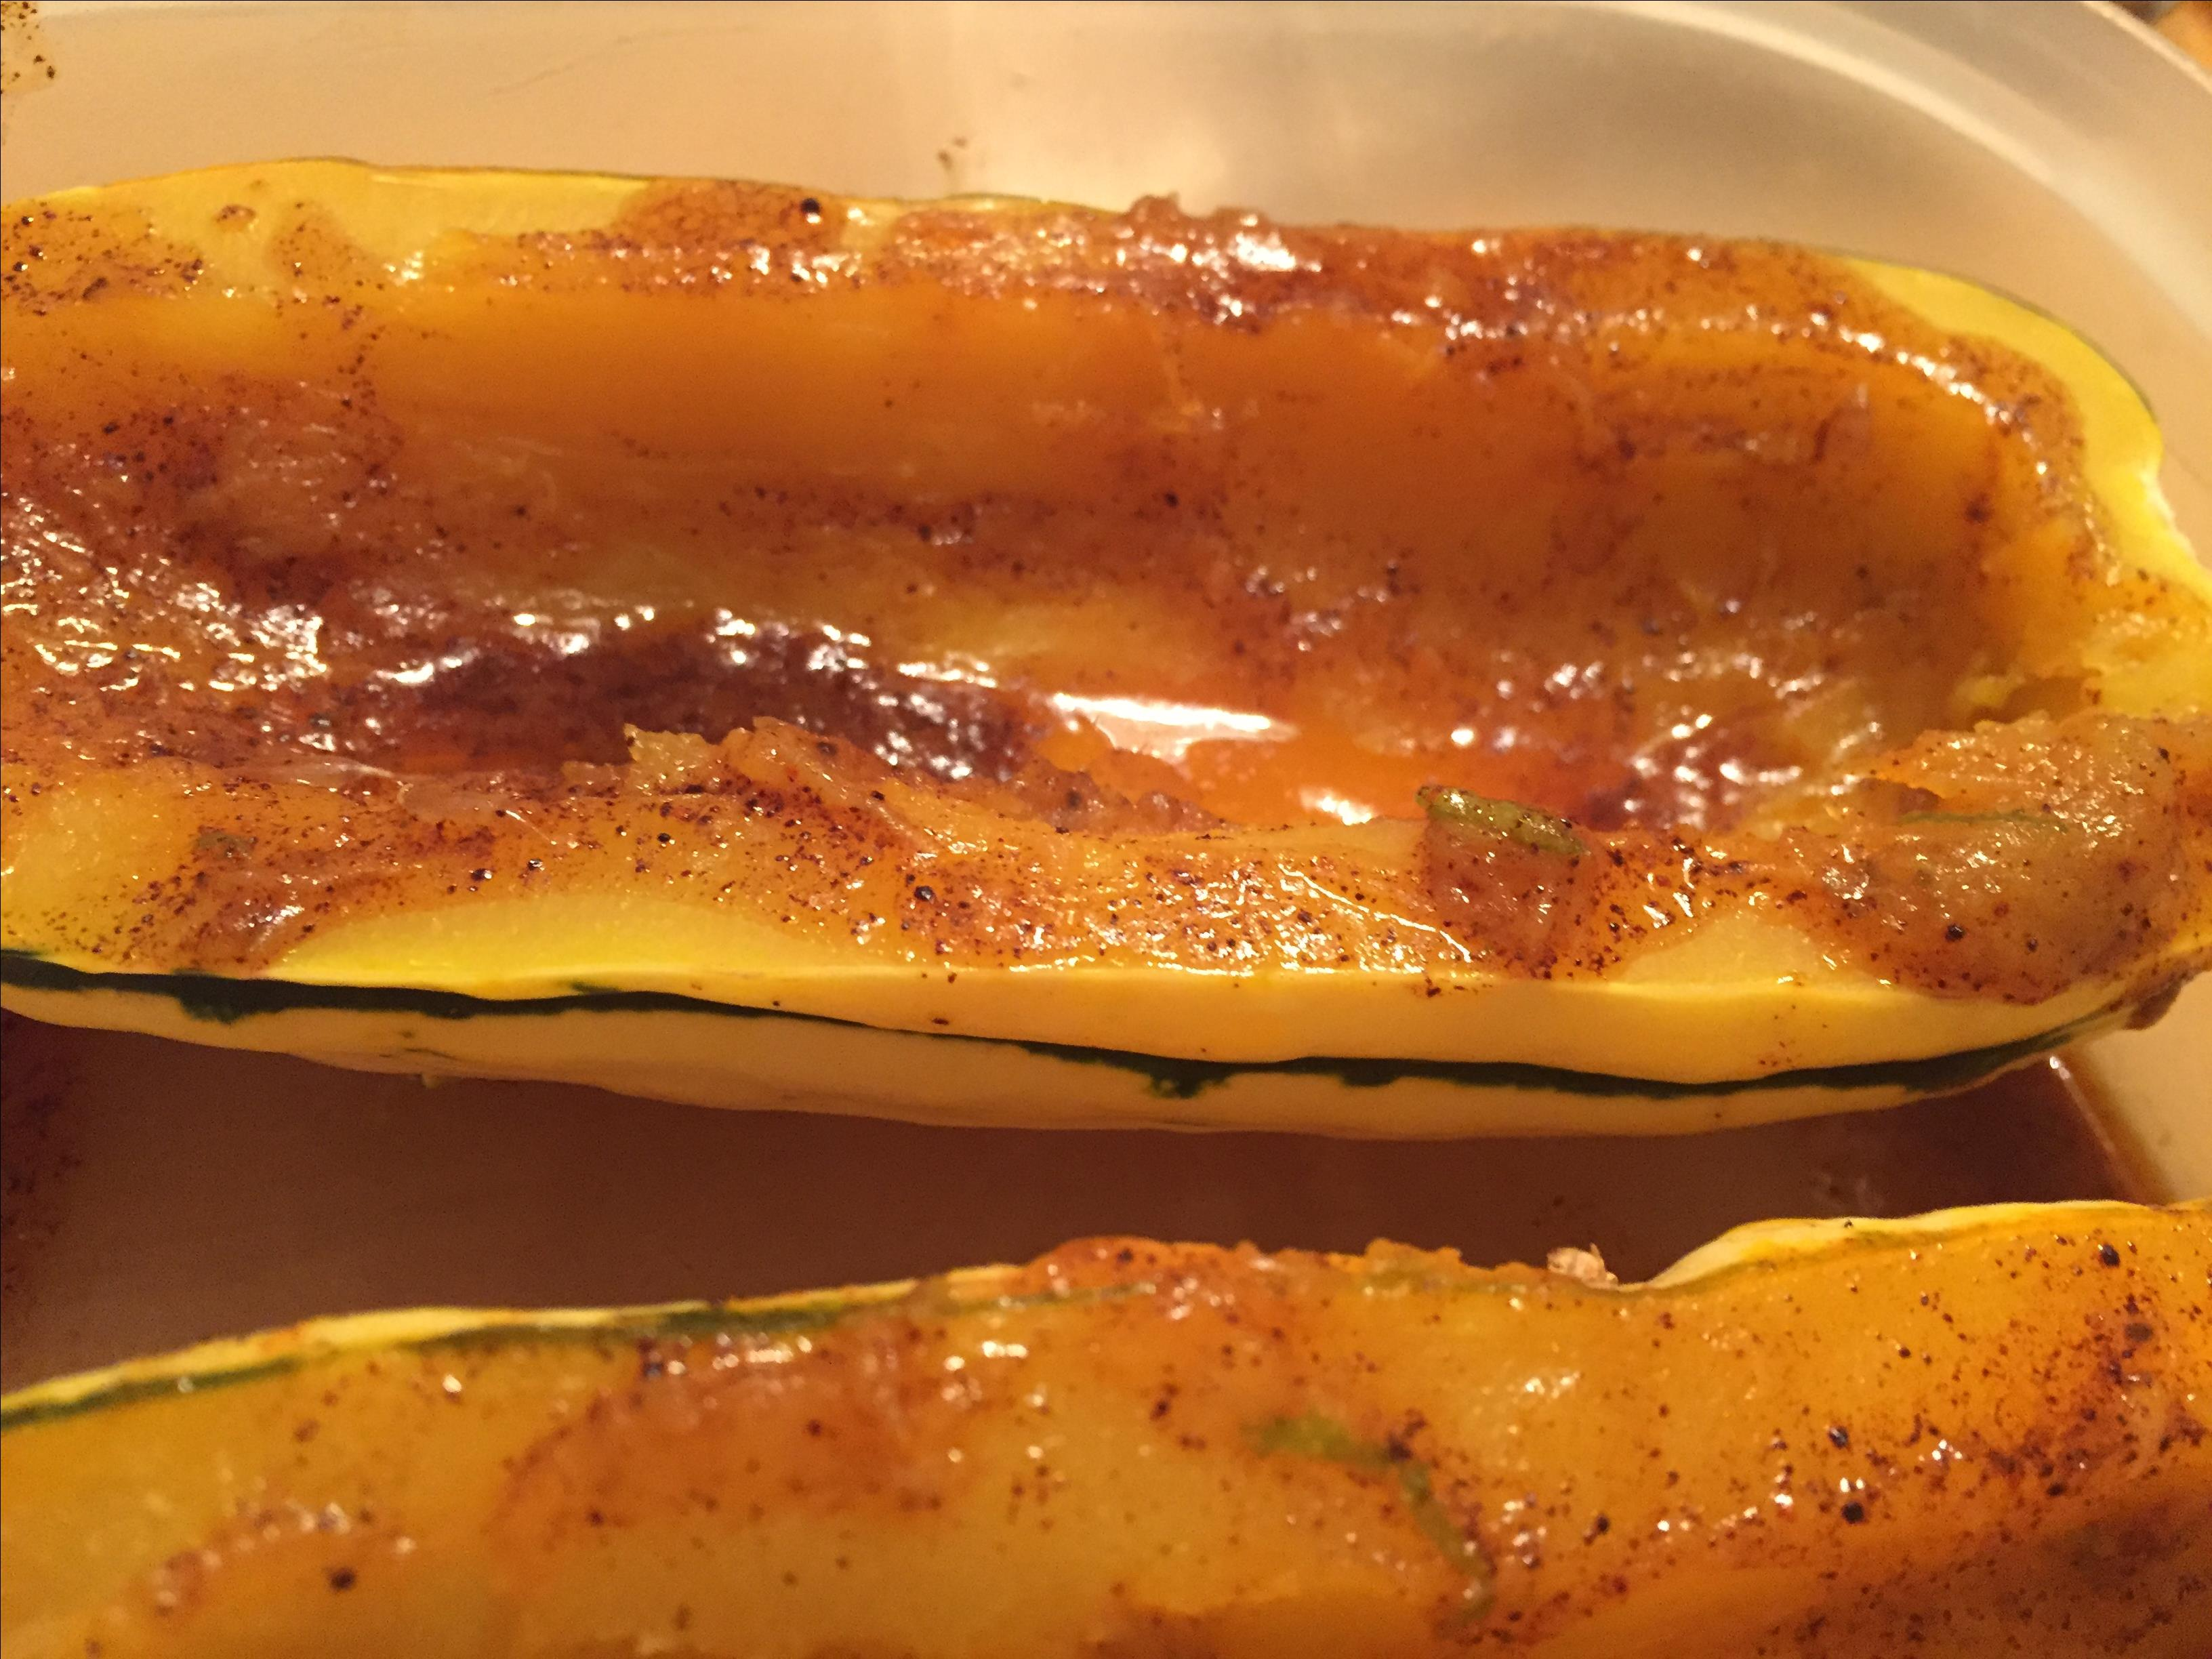 Baked Delicata Squash with Lime Butter Karla Marie Dombrock